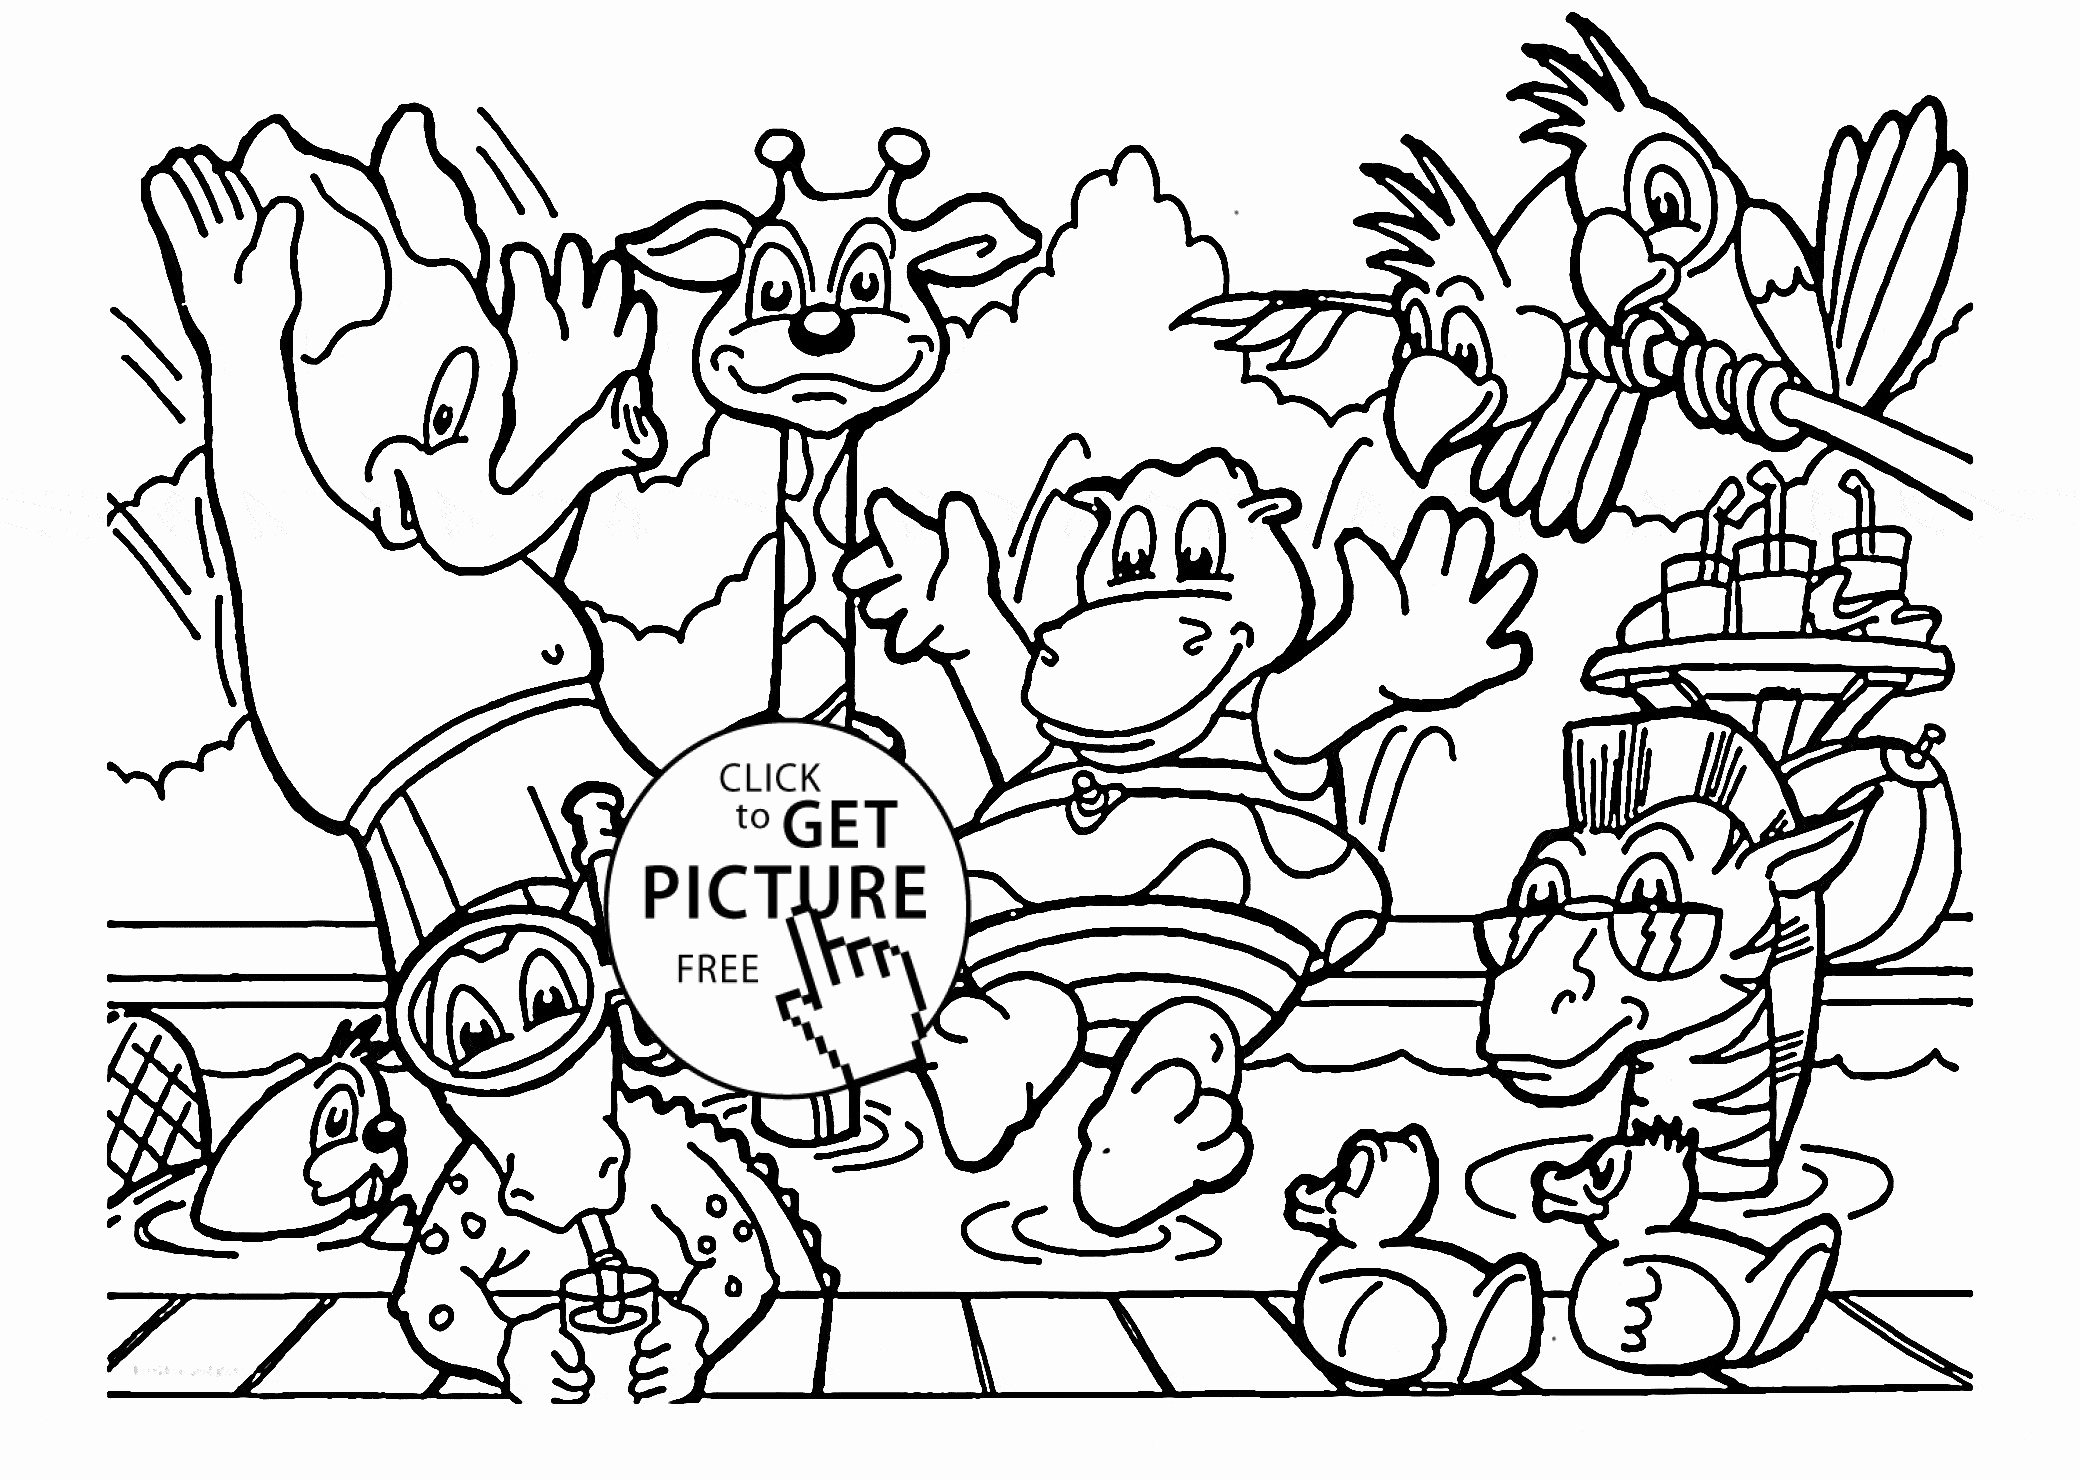 Rick And Morty Coloring Pages - Lezincnyc - Free Printable South Park Coloring Pages